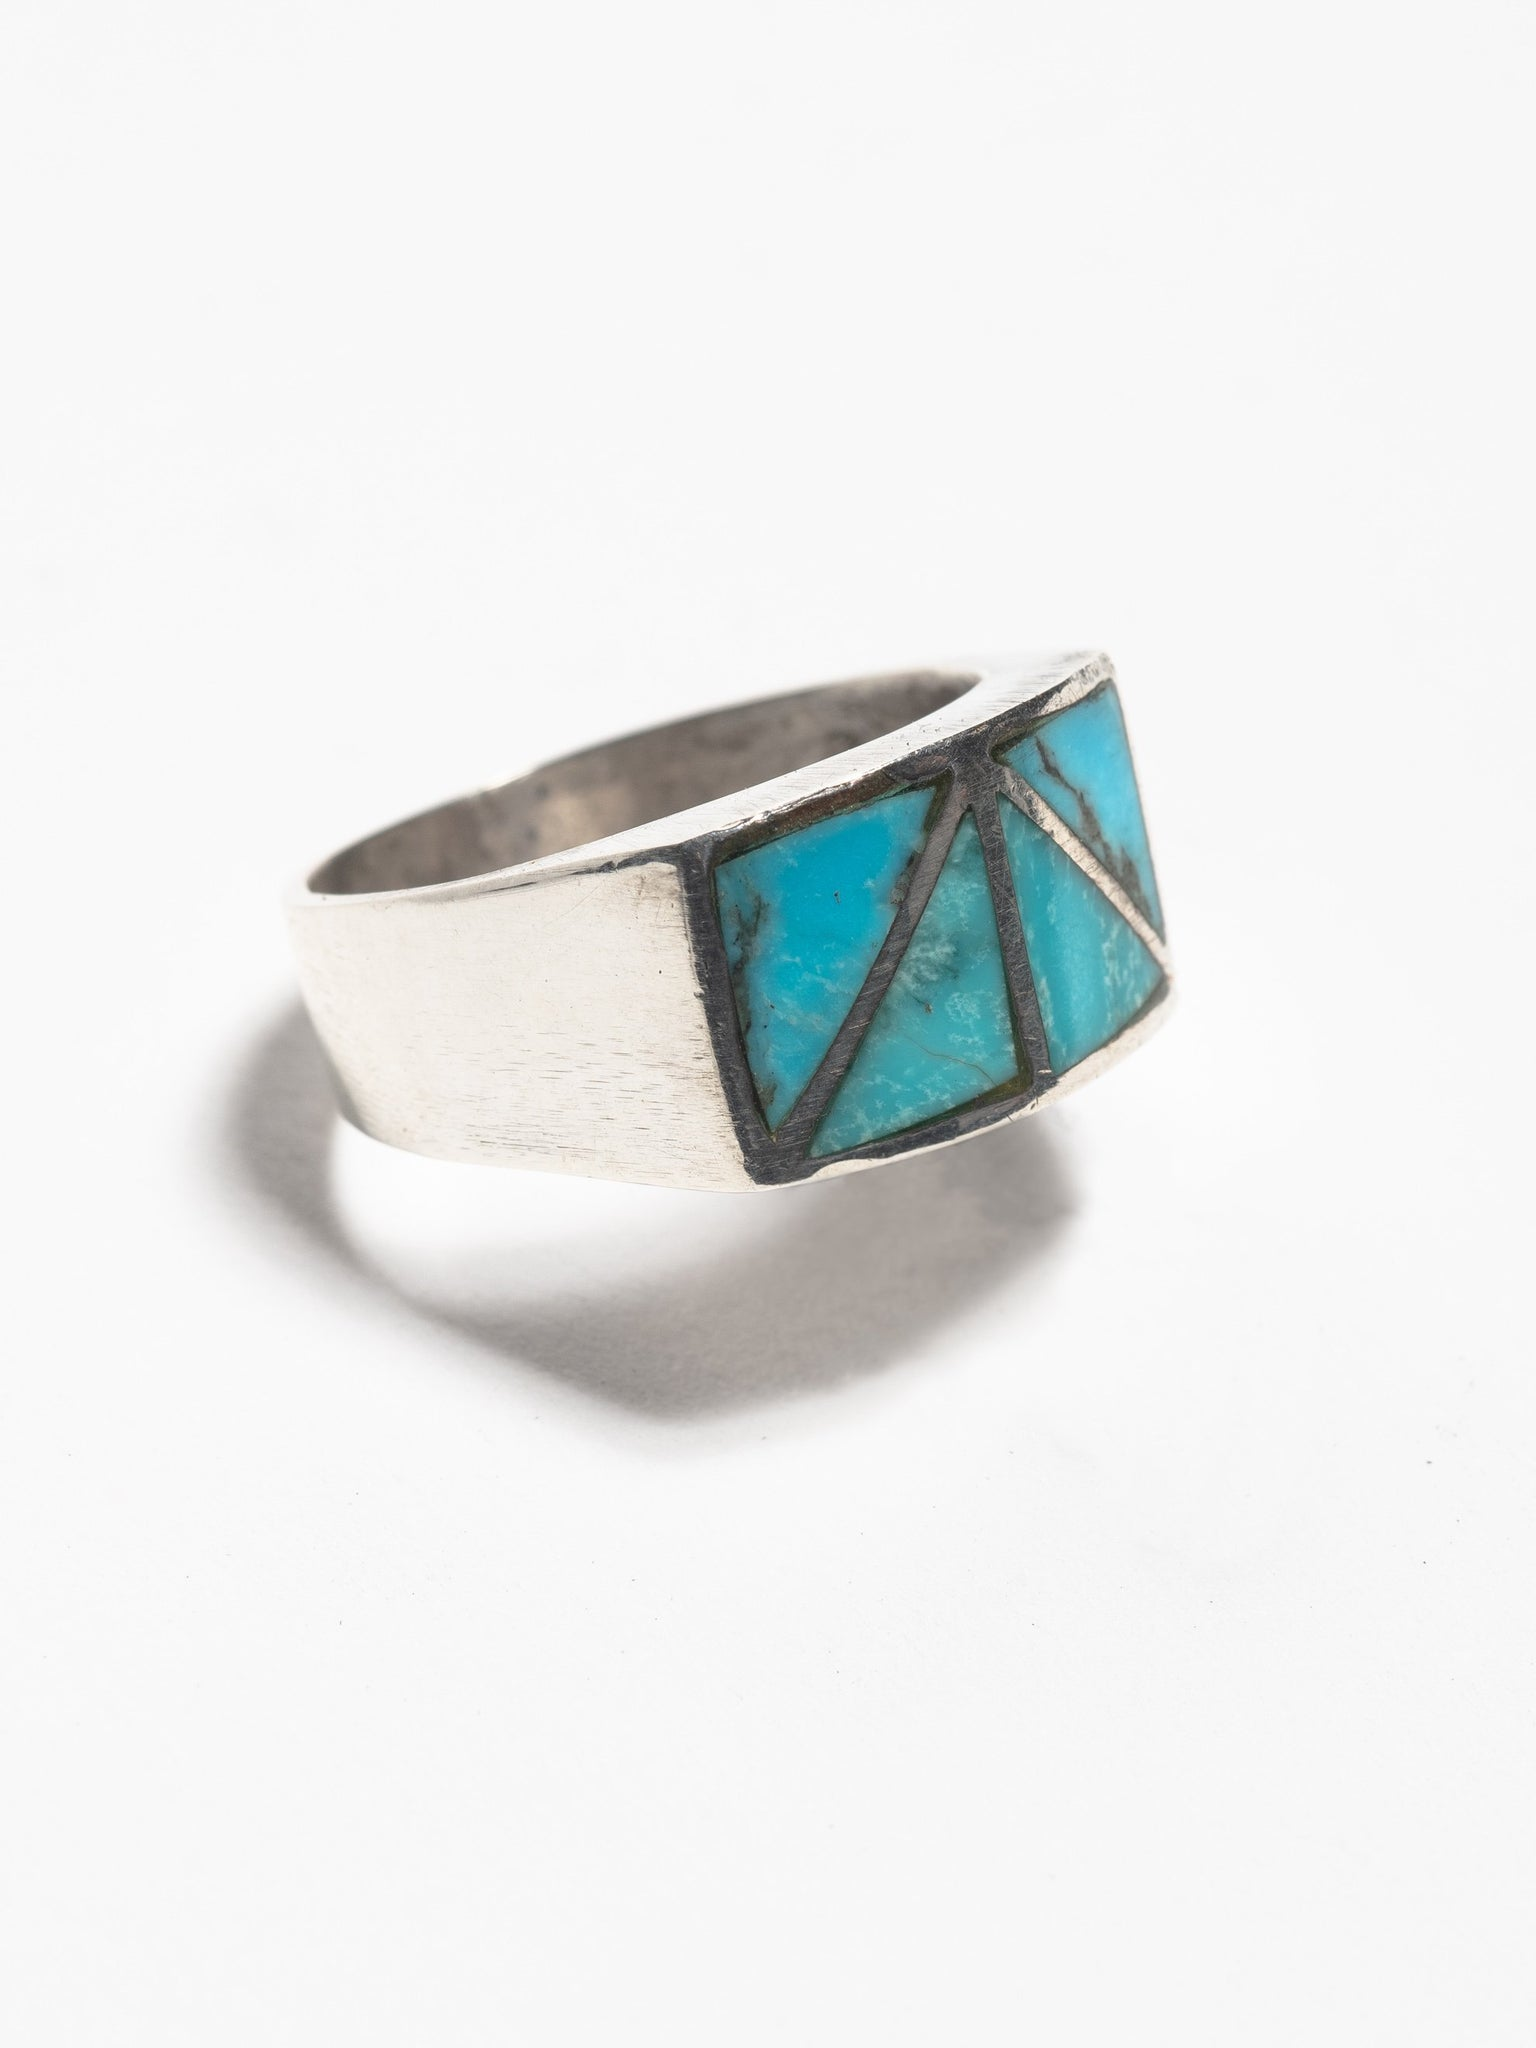 vintage-navajo-heavy-gauge-sterling-silver-ring-with-inset-sterling-chanels-and-inlayed-turquoise